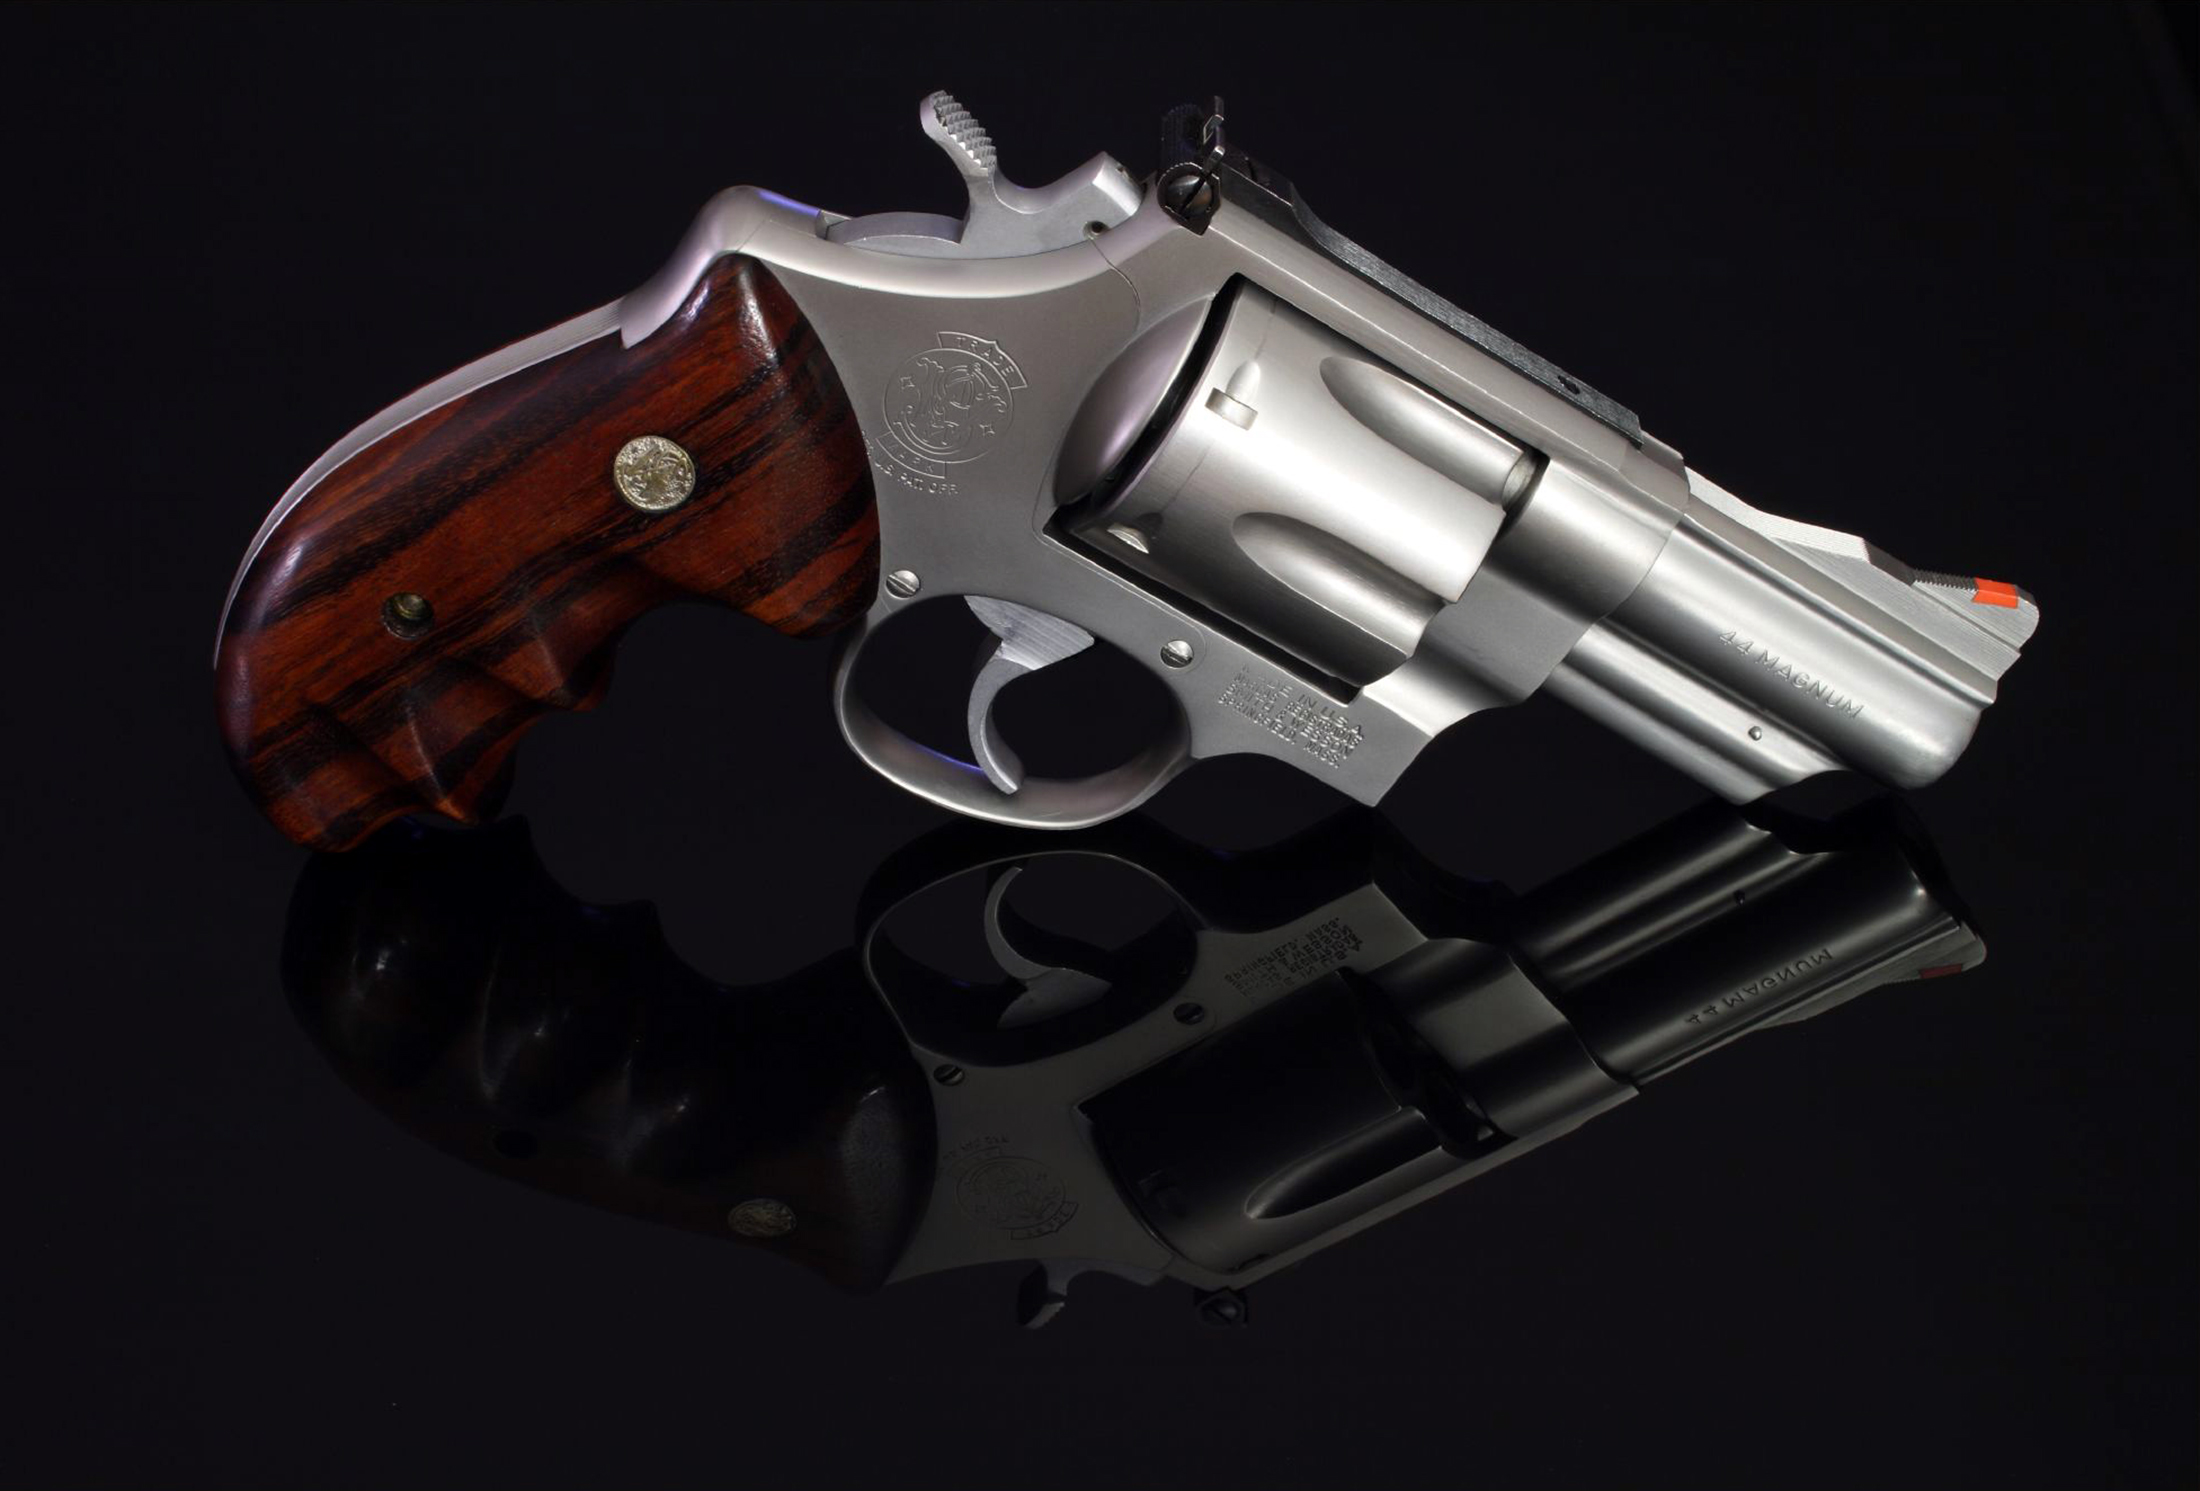 Smith & Wesson's  44 Magnum Revolver: Why You Should Fear the 'Dirty